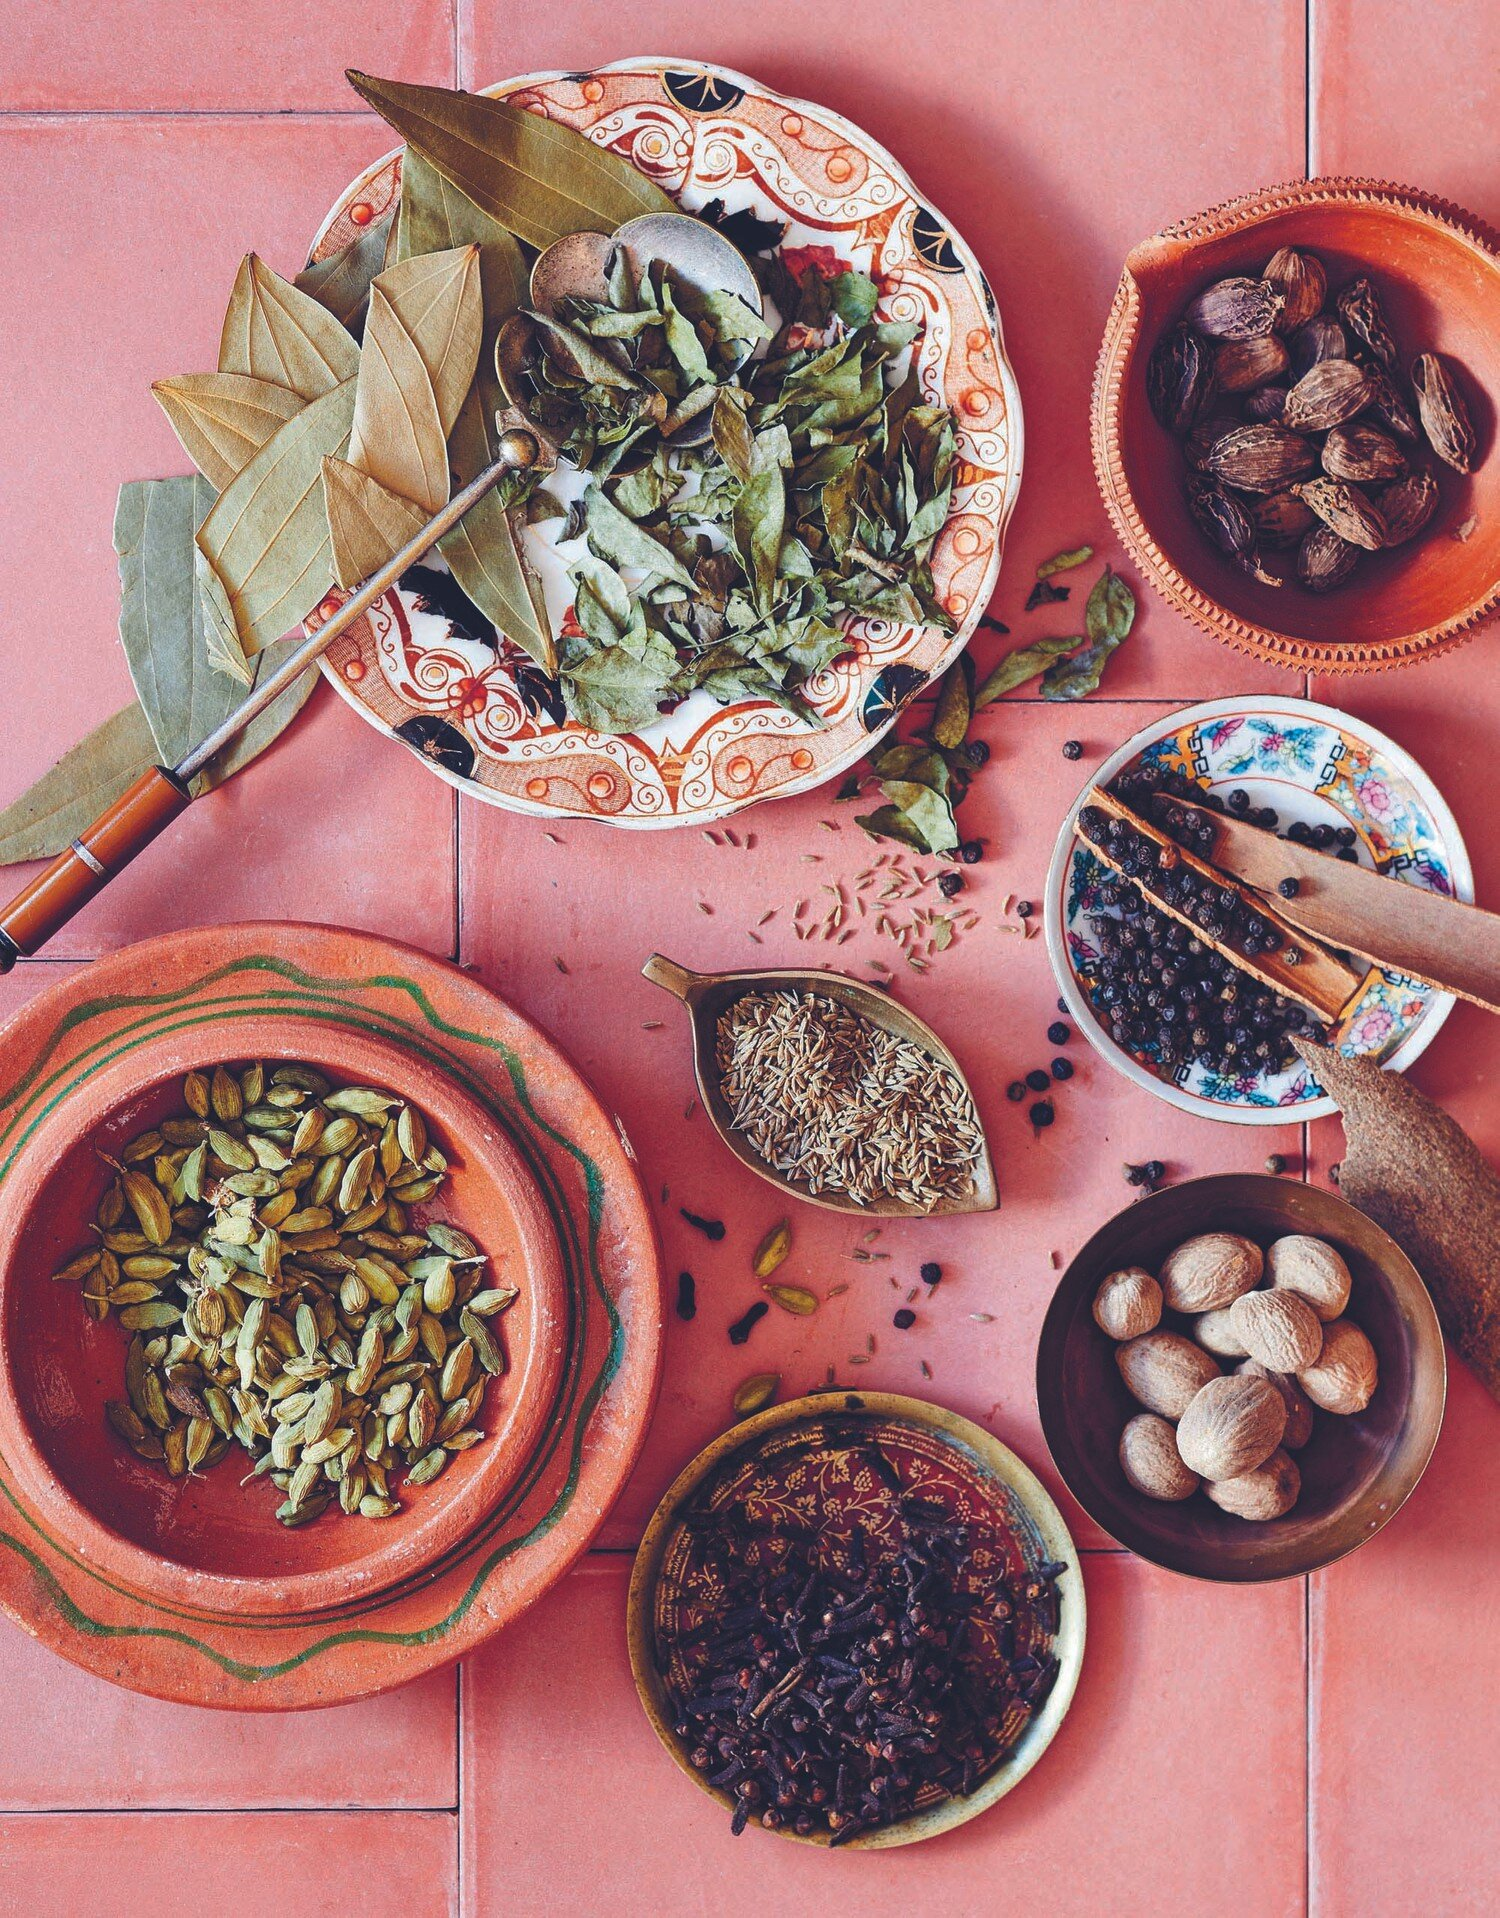 Chaar masalah , a blend of four spices, is used liberally to give Afghan food its flavor.